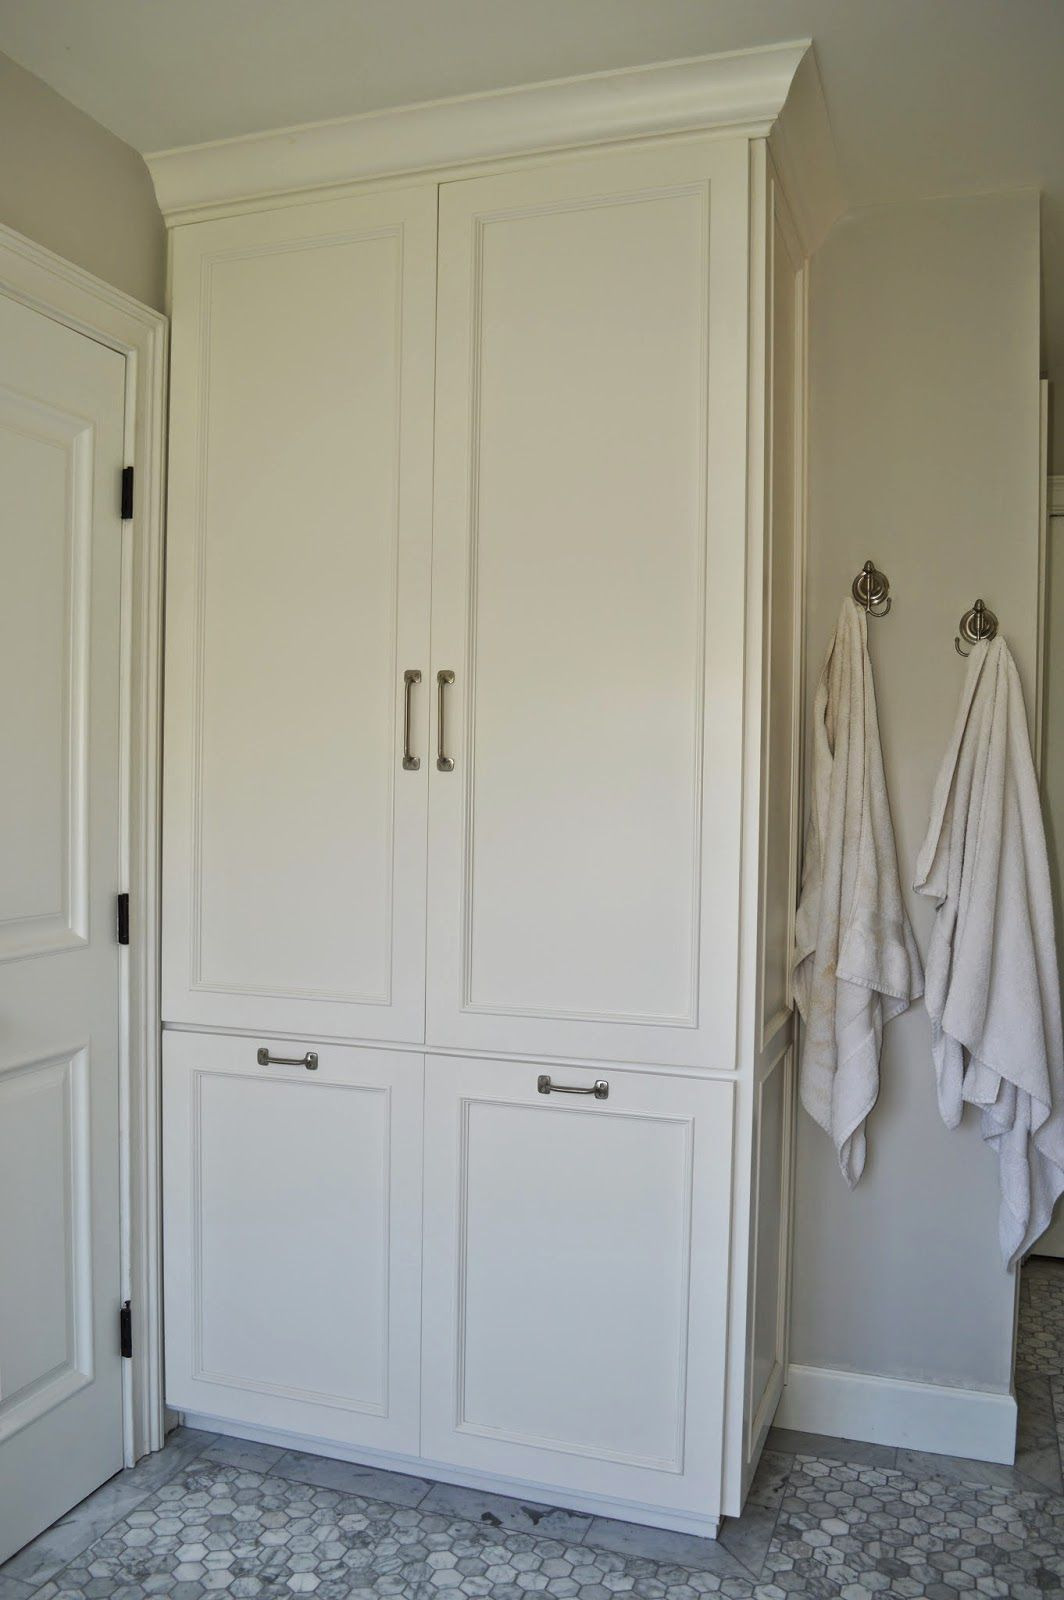 install tall cabinet instead of built out closet for linen storage ...